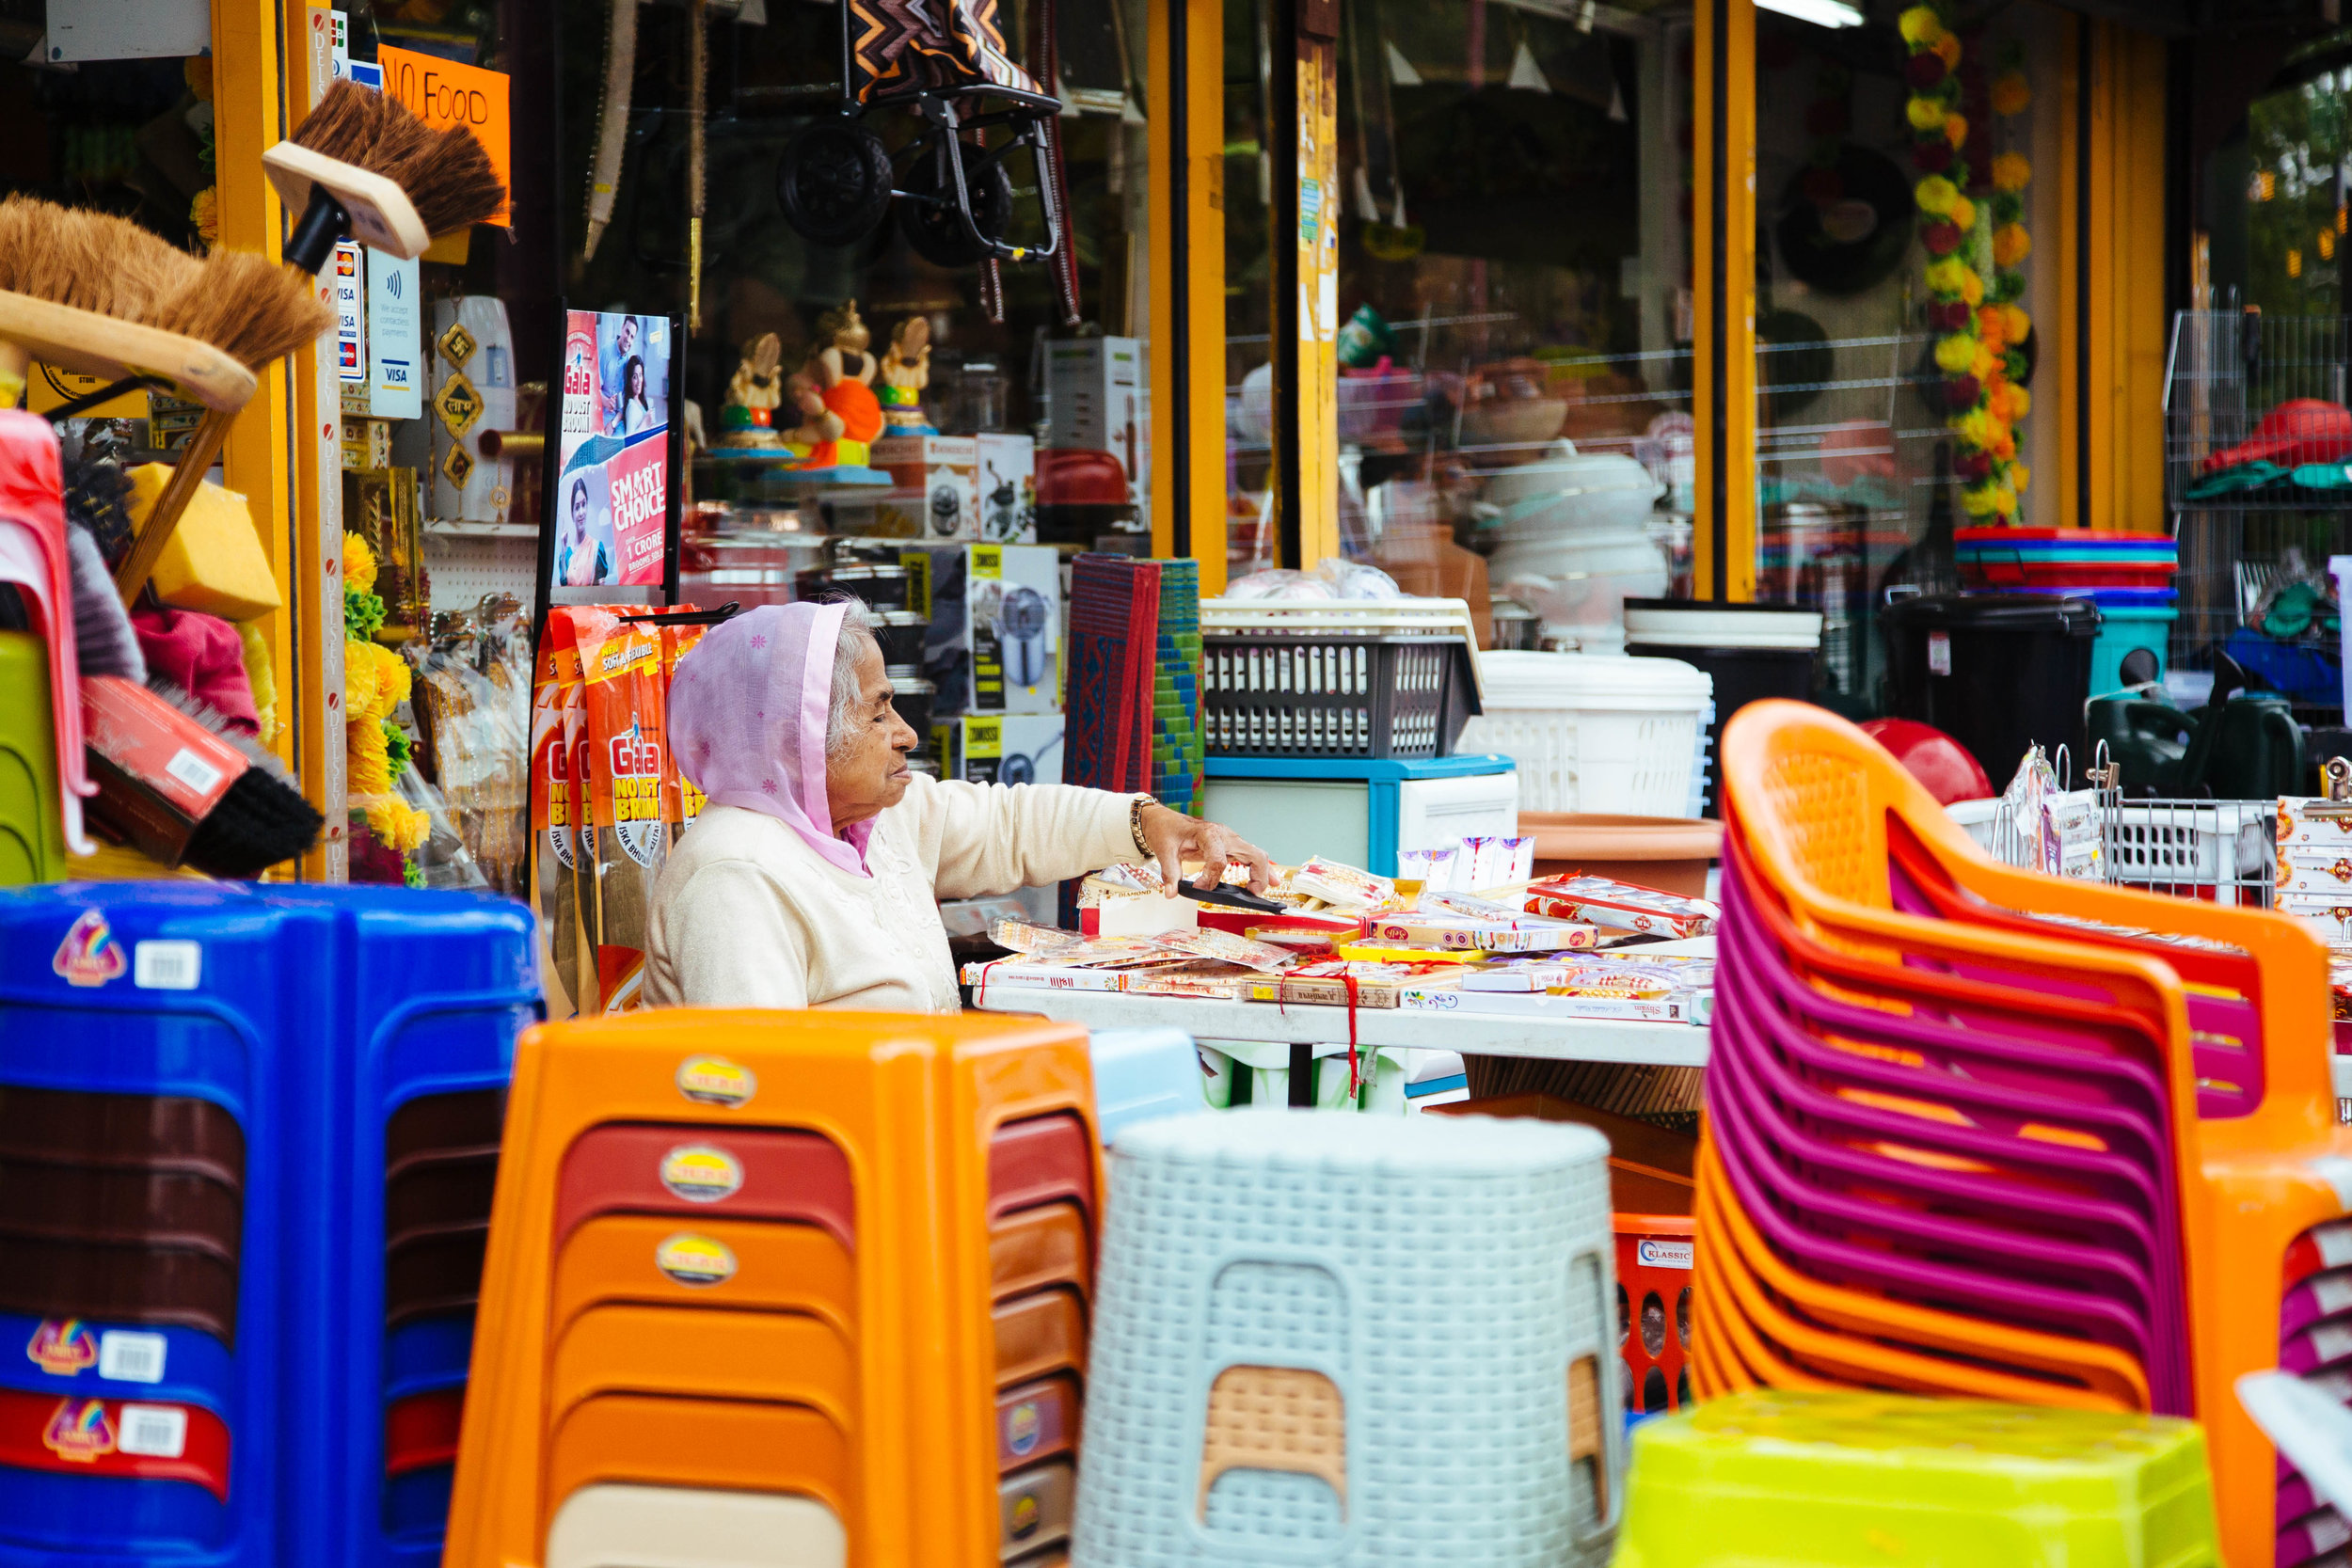 birmingham soho road market asian woman colourful plastic chairs